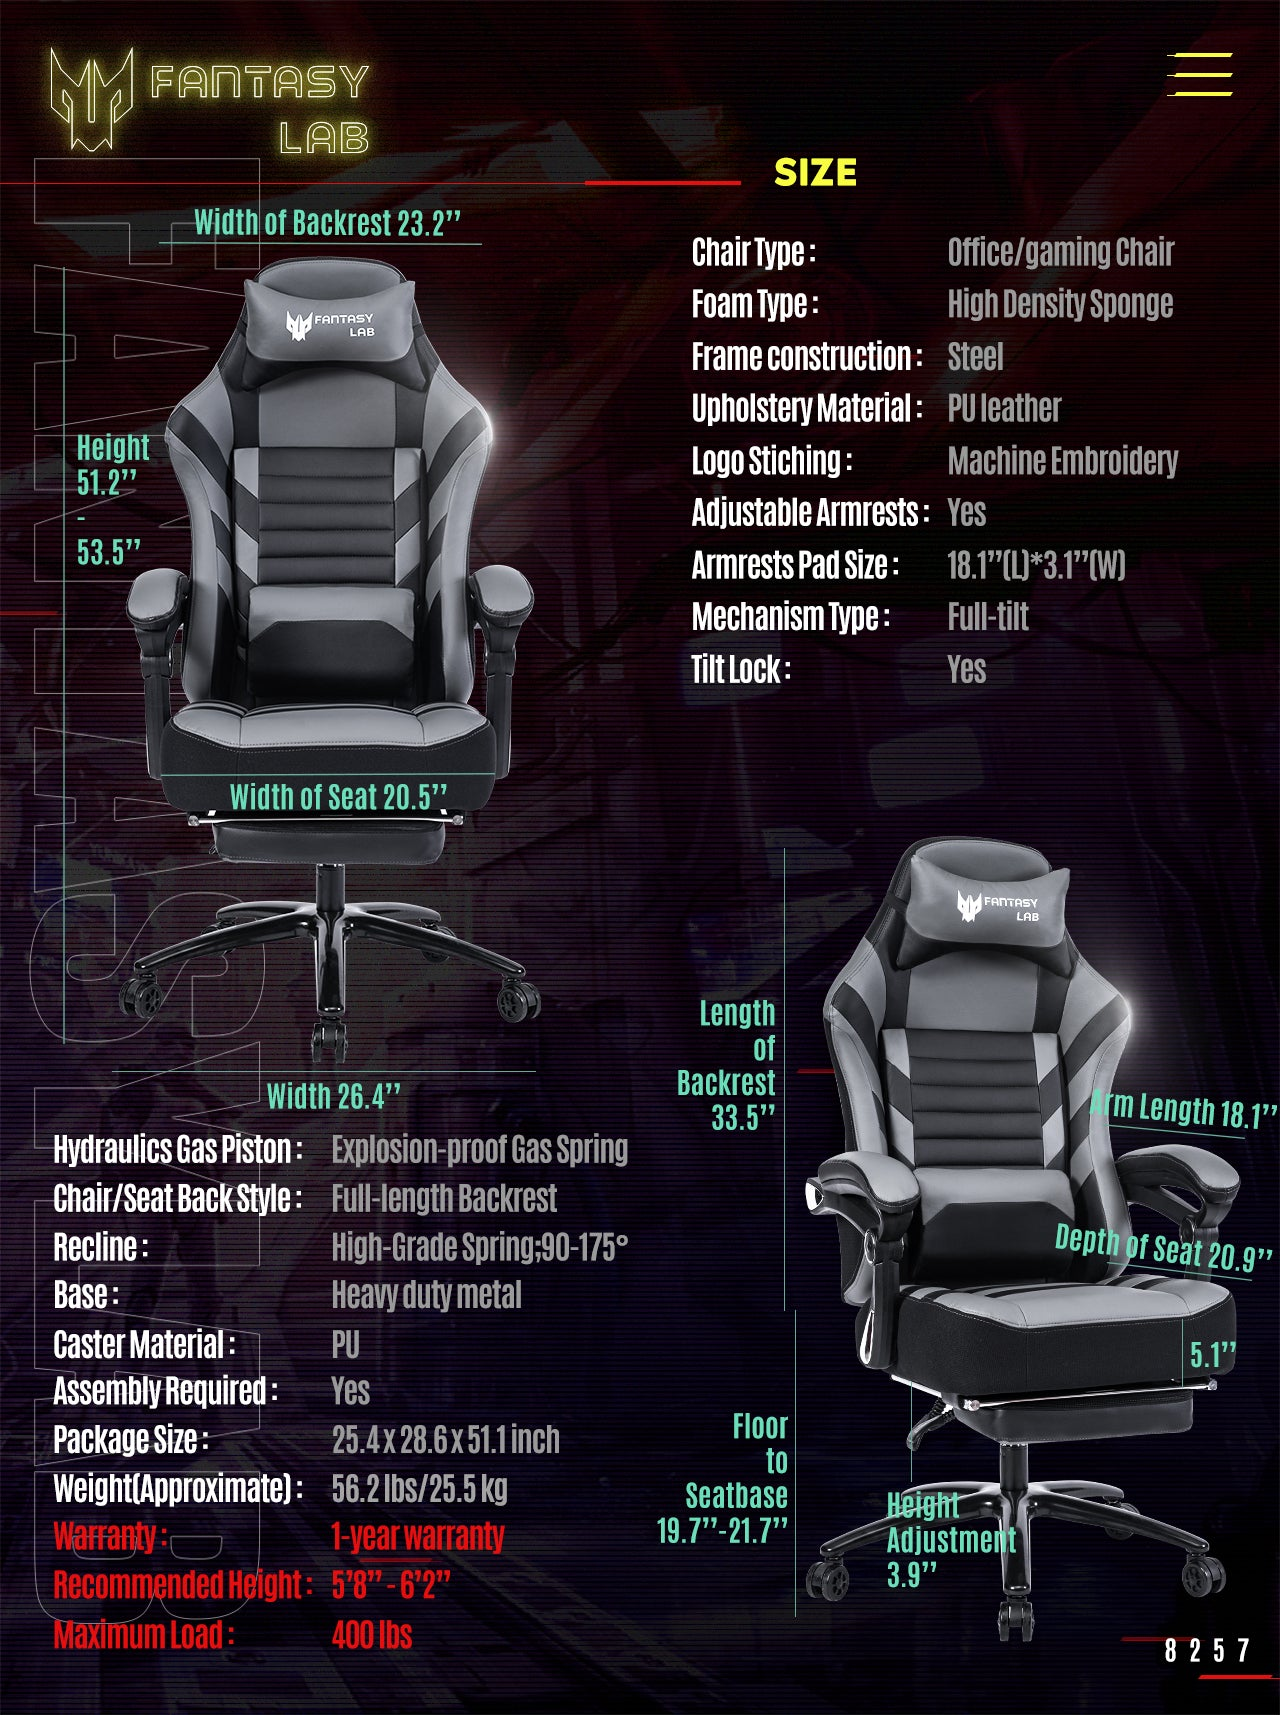 FANTASYLAB 8257S SERIES BIG AND TALL GRAY GAMING OFFICE CHAIR SPECIFICATION